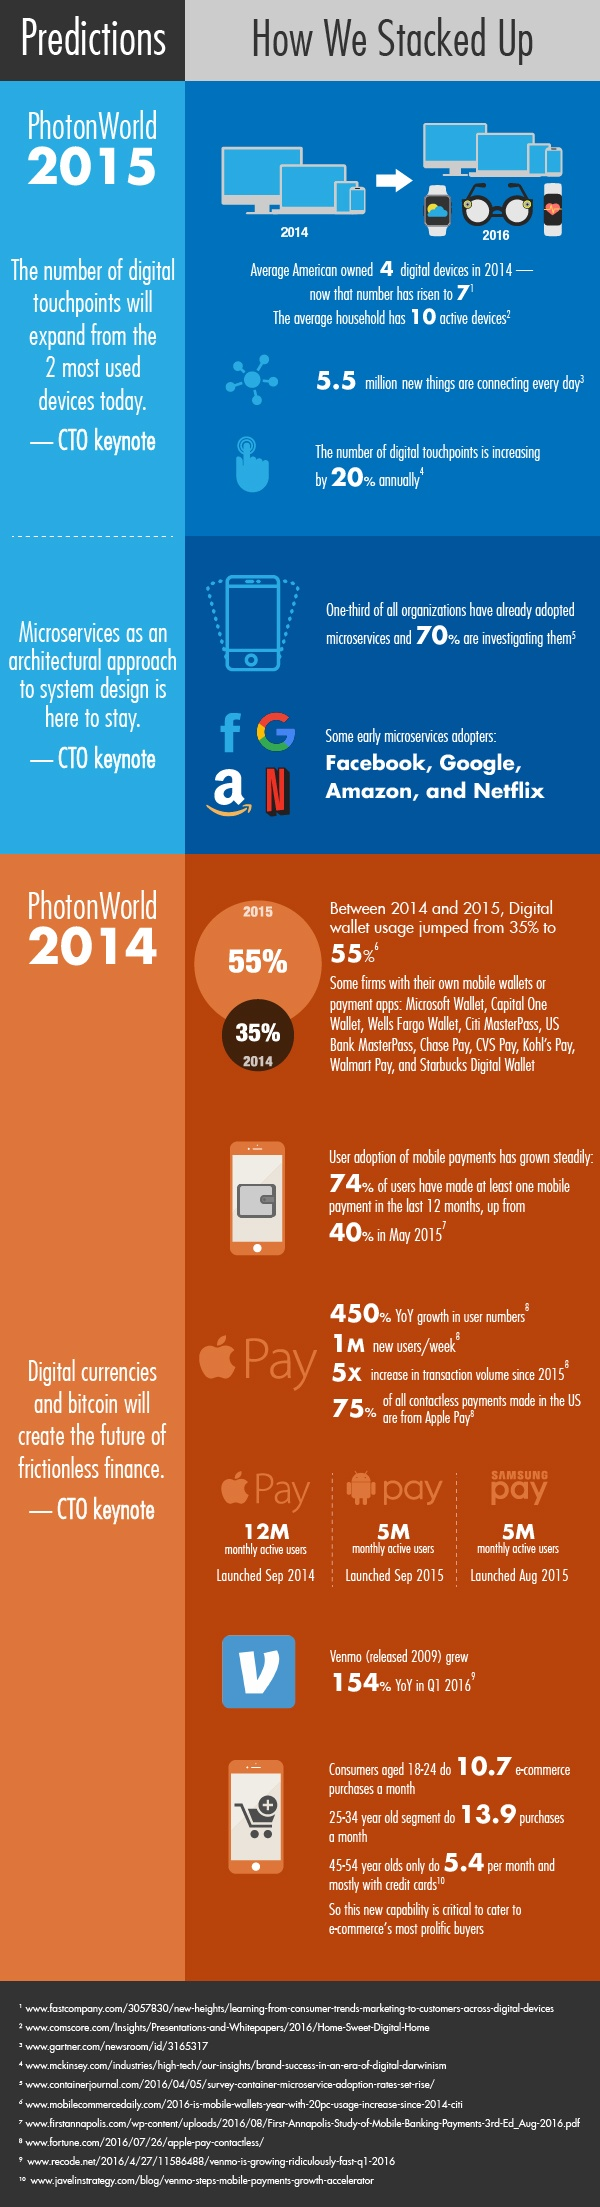 PhotonWorld Infographics on the Predictions made by us on various Omnichannel Trends and how it came true